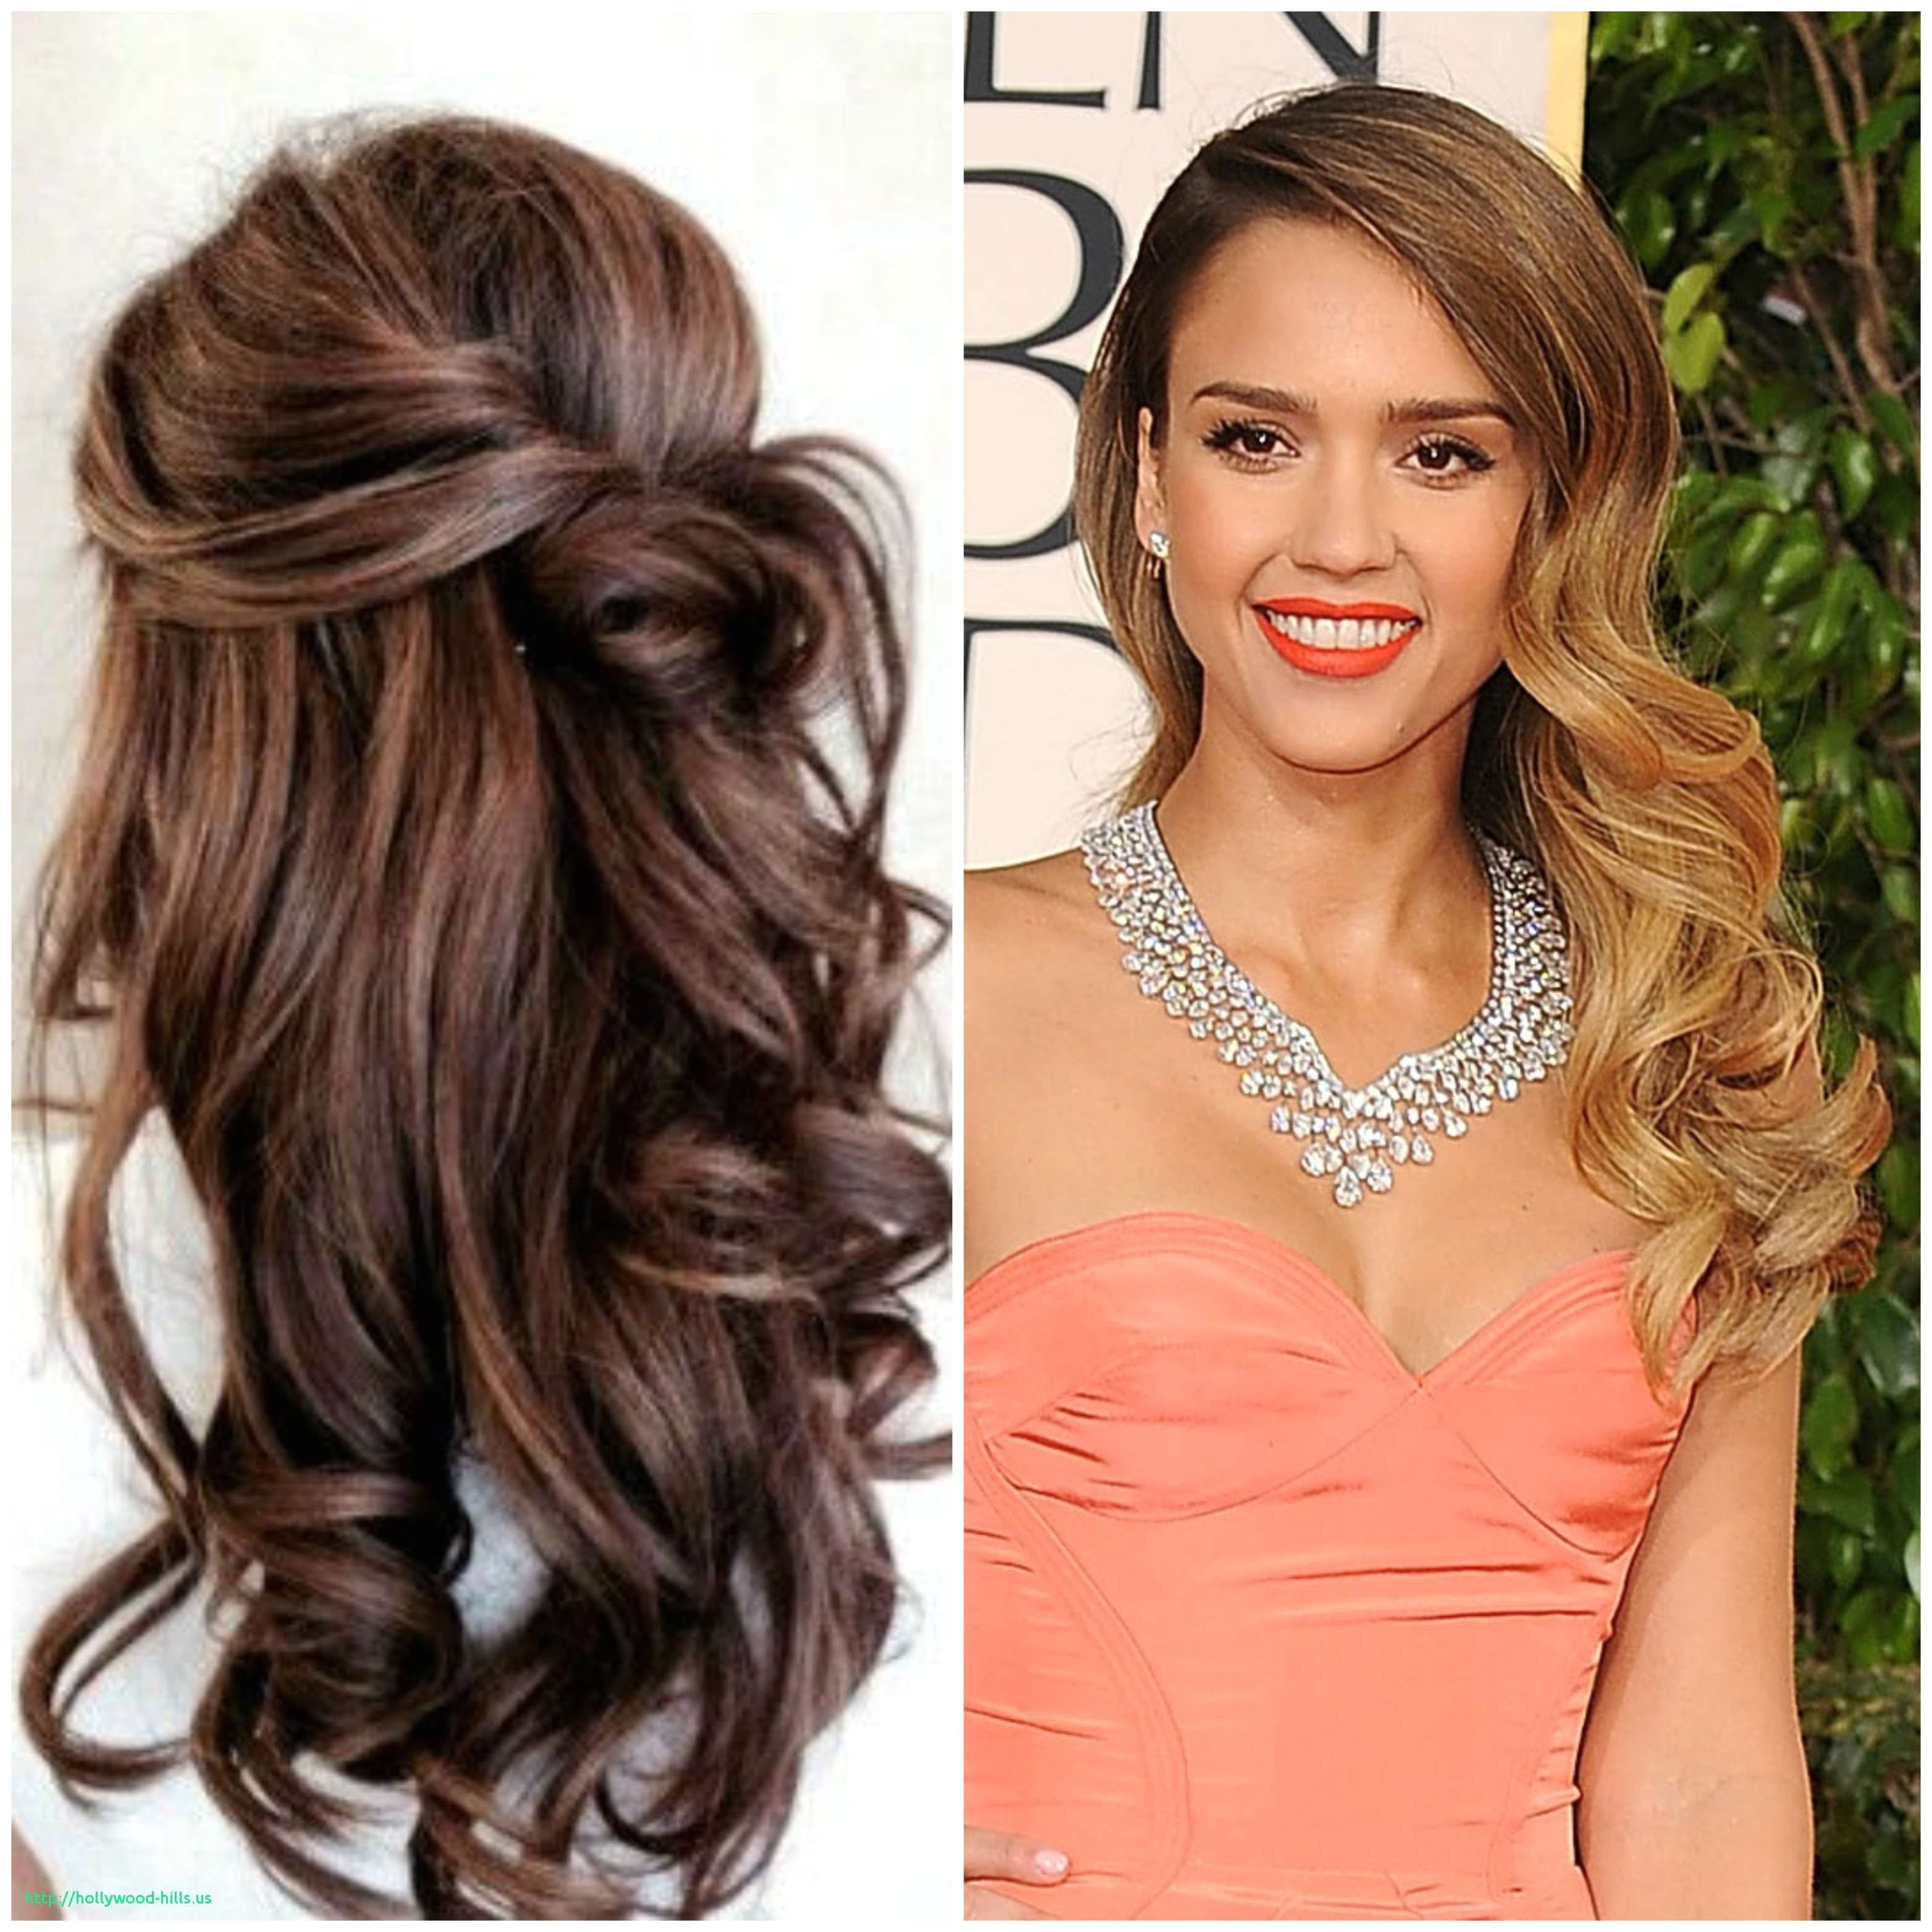 Braided Hairstyles for Short Hair Youtube Best Braided Hairstyles for Short Hair Youtube – Aidasmakeup